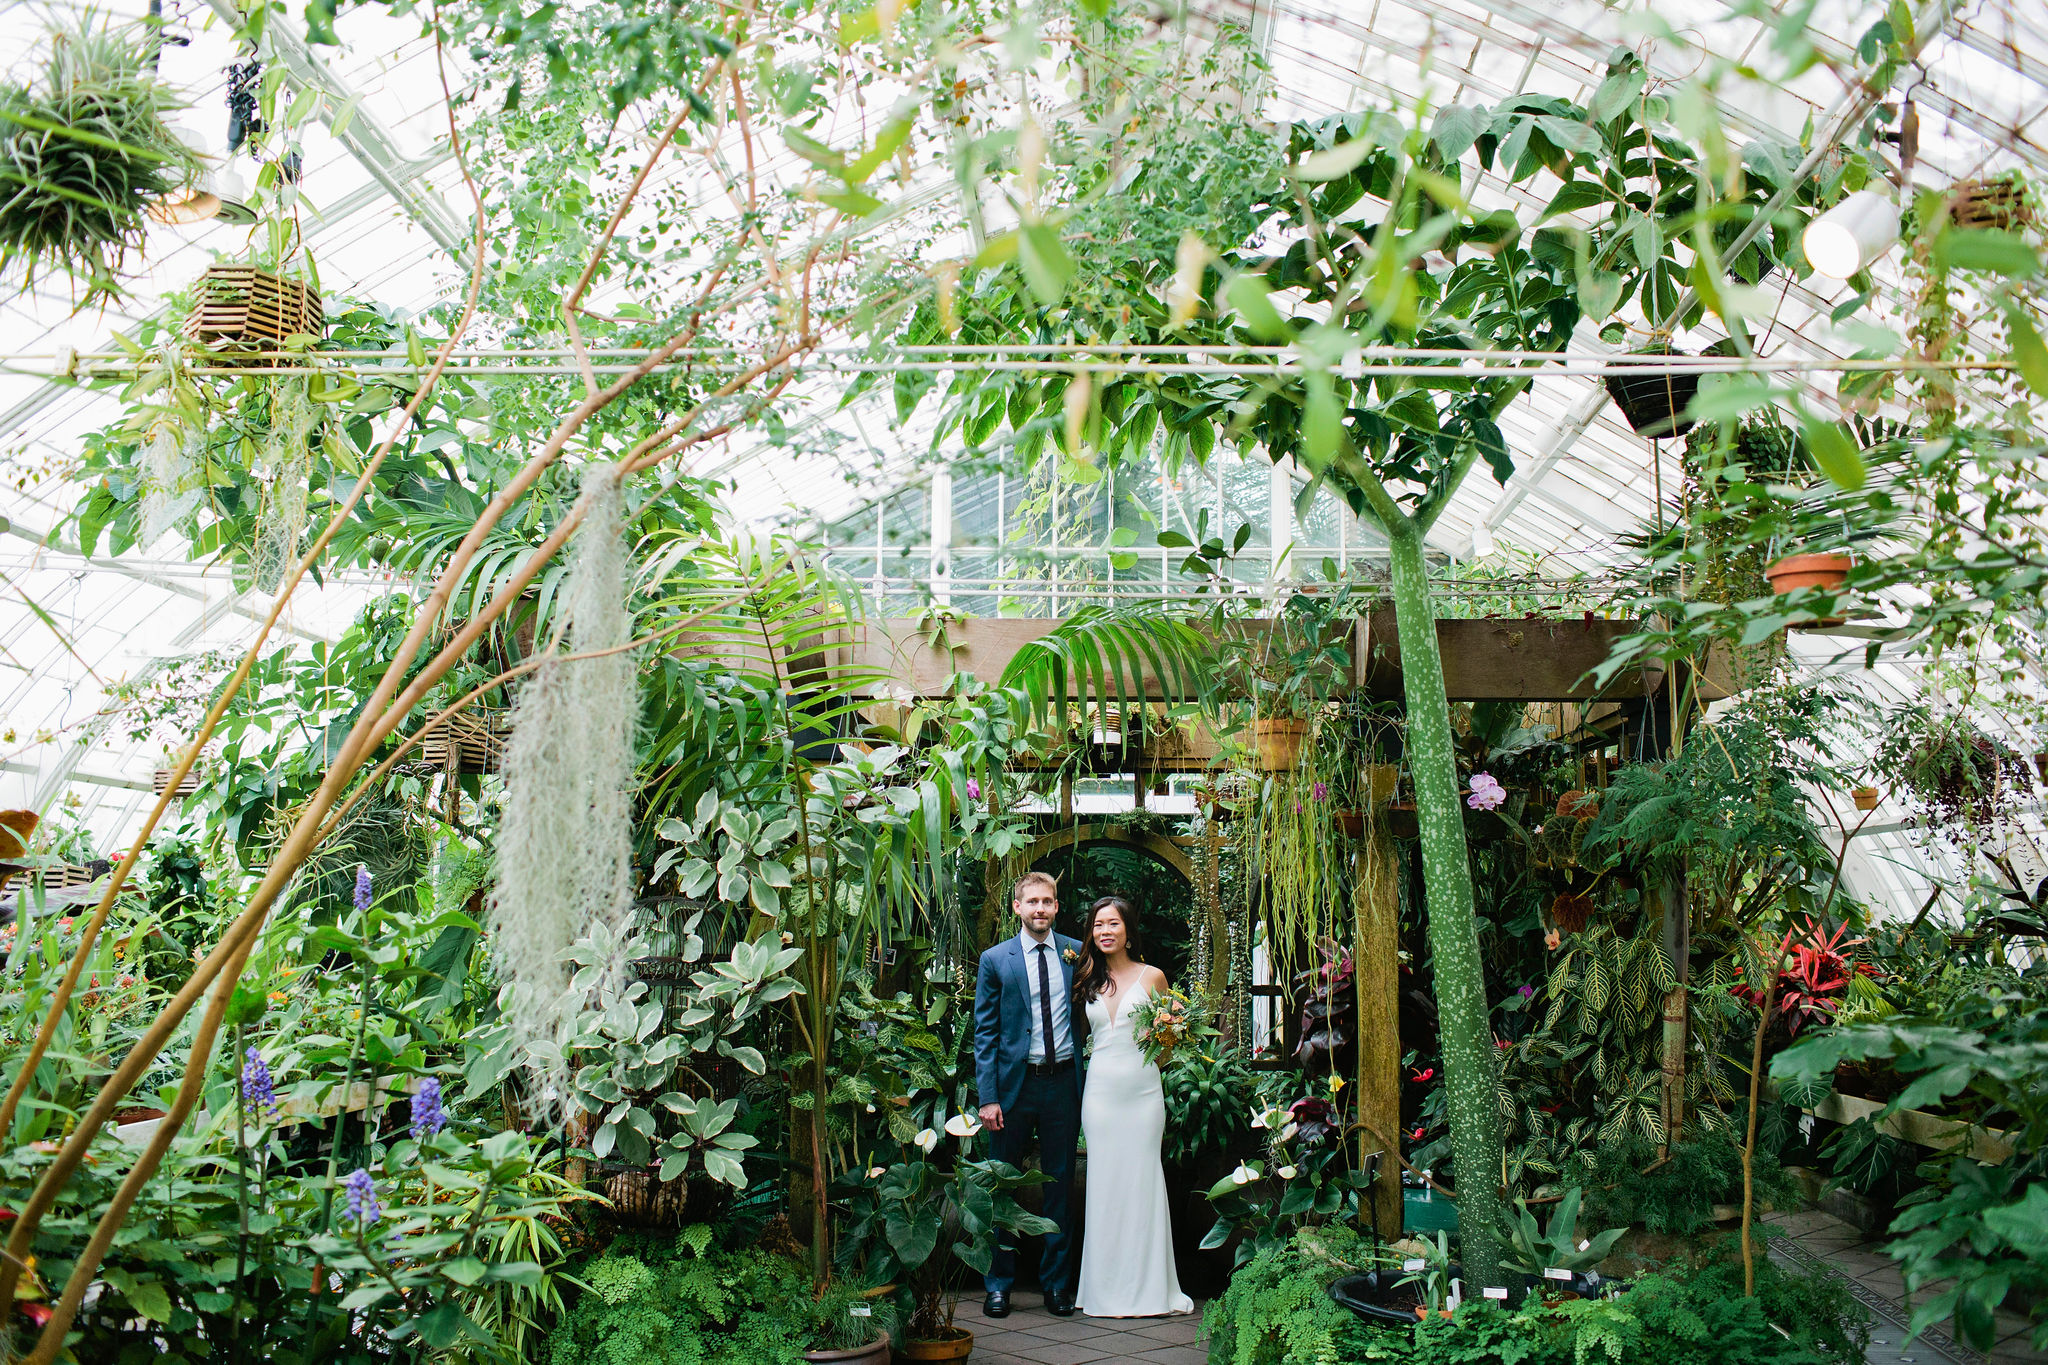 Conservatory-of-Flowers-Wedding-04.JPG